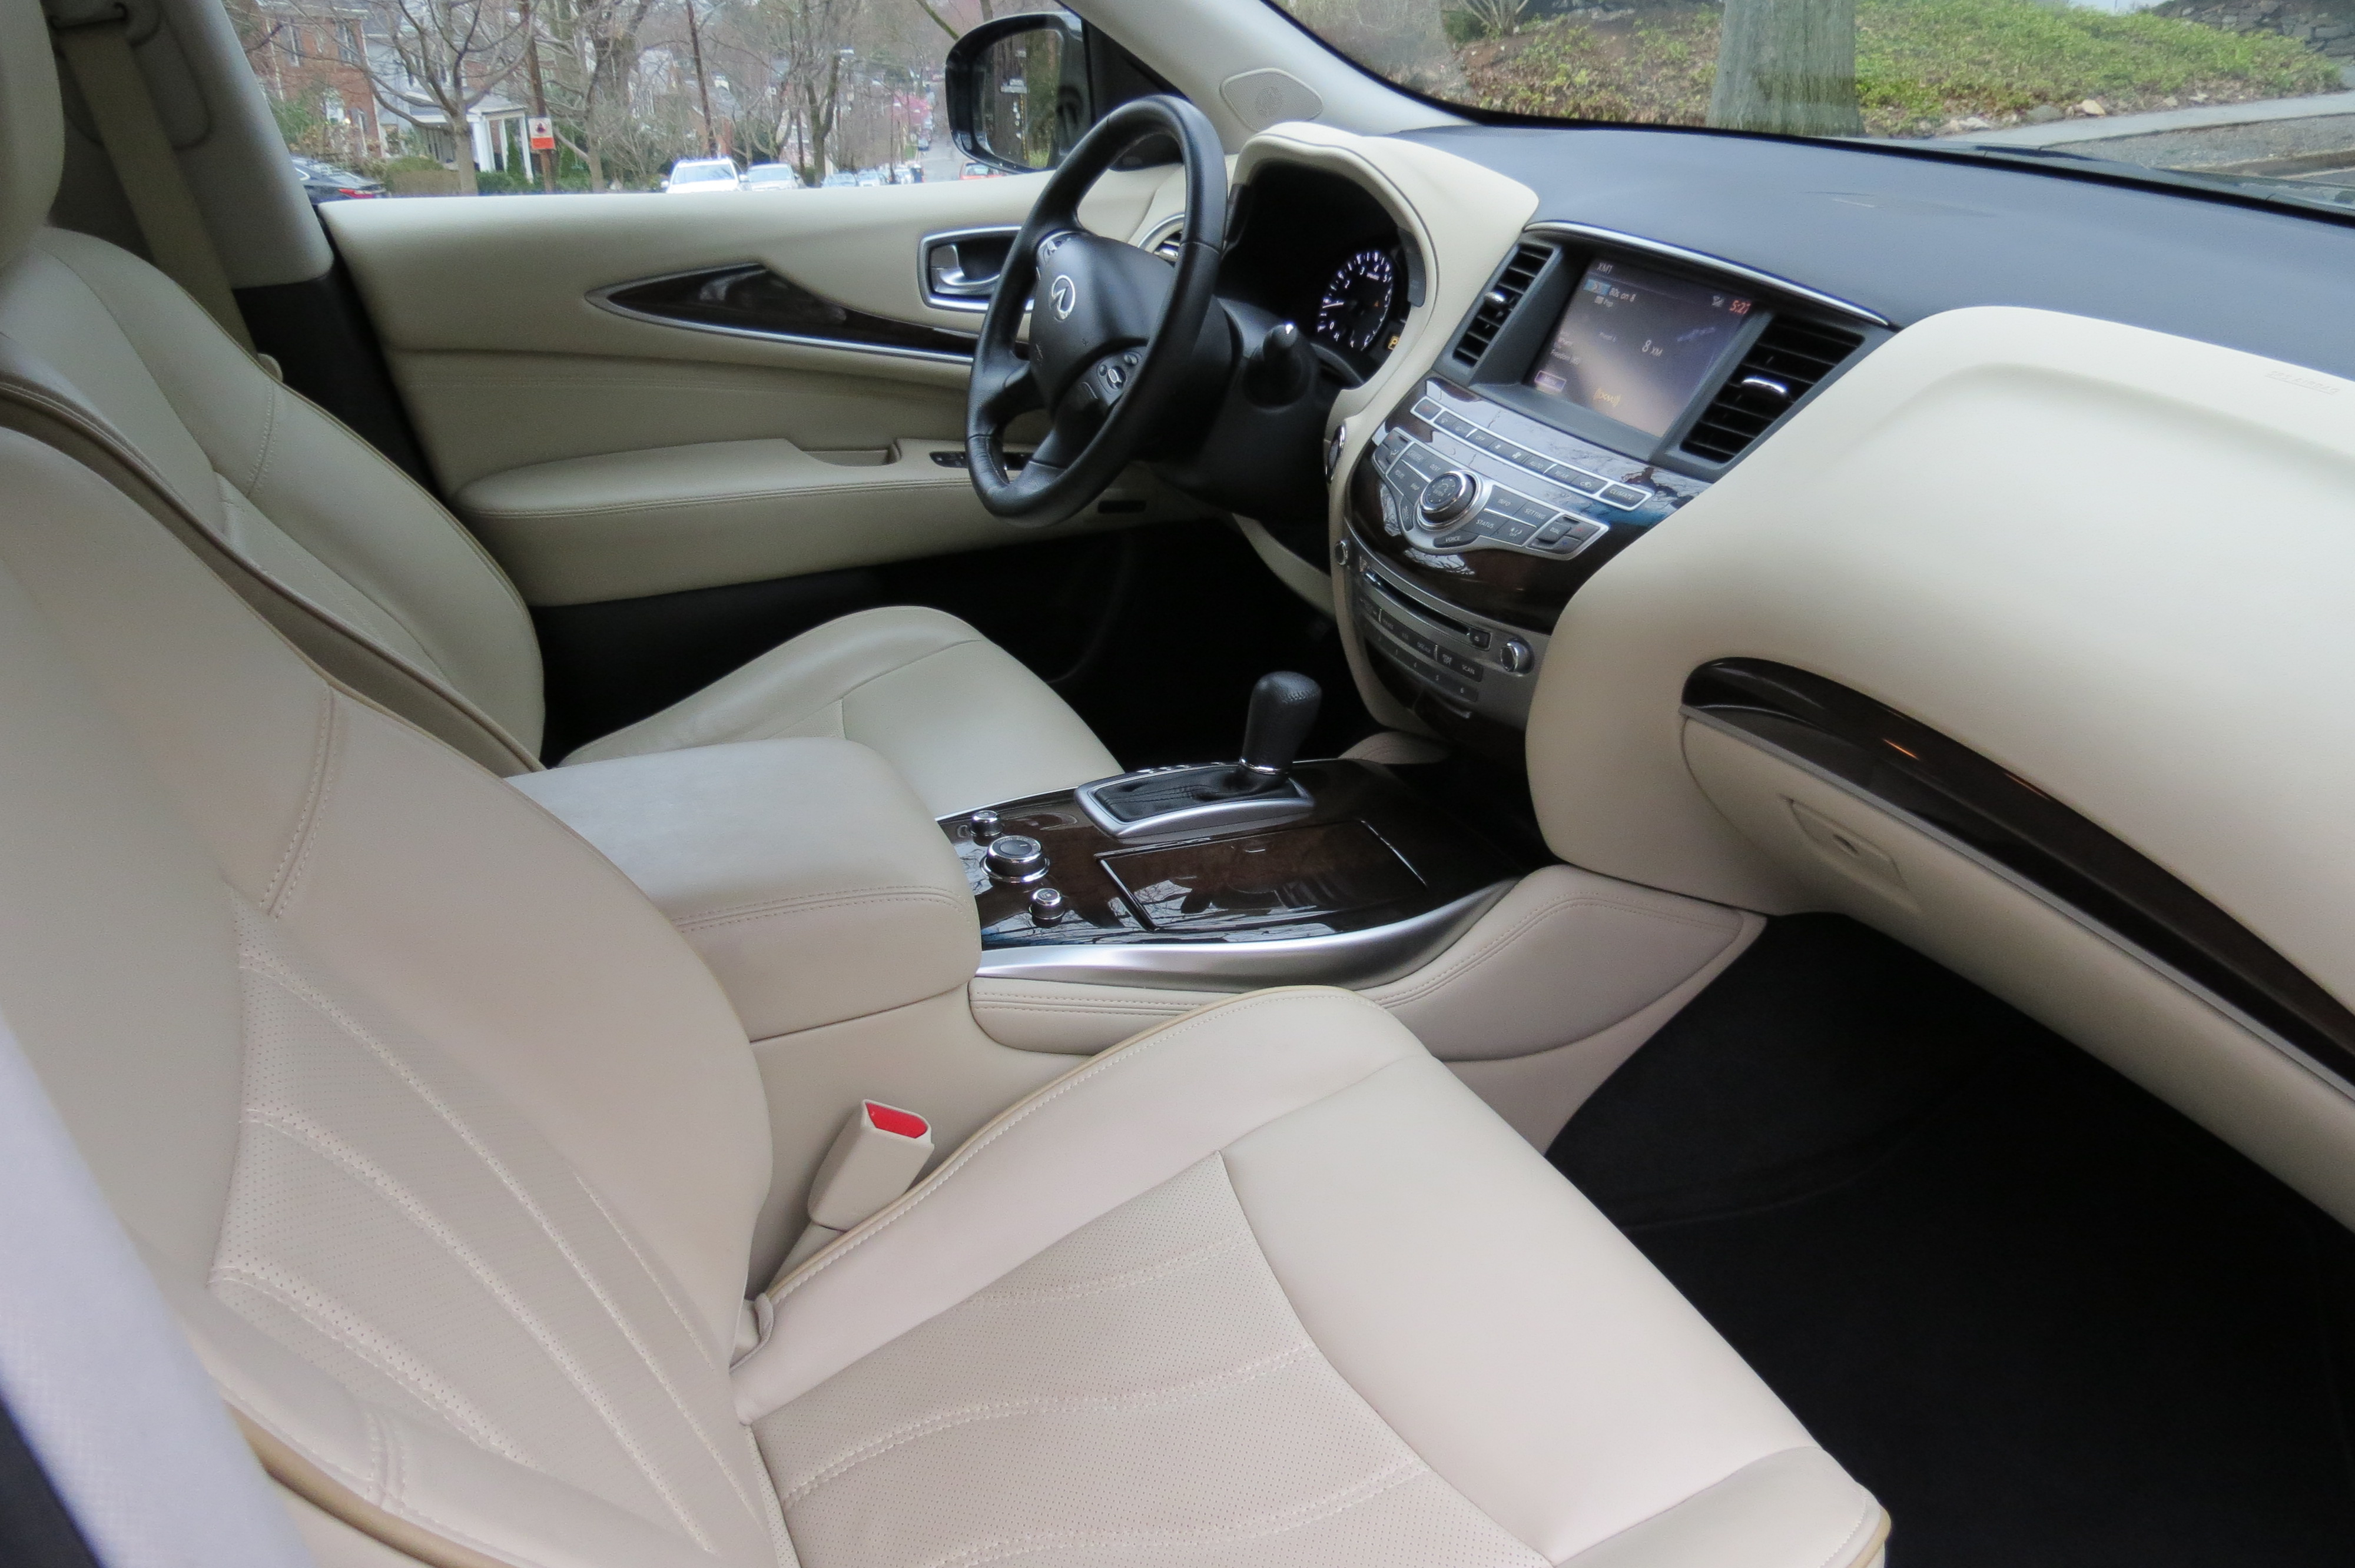 The inside of the Infiniti QX60 features wheat colored leather and maple wood trim accents.